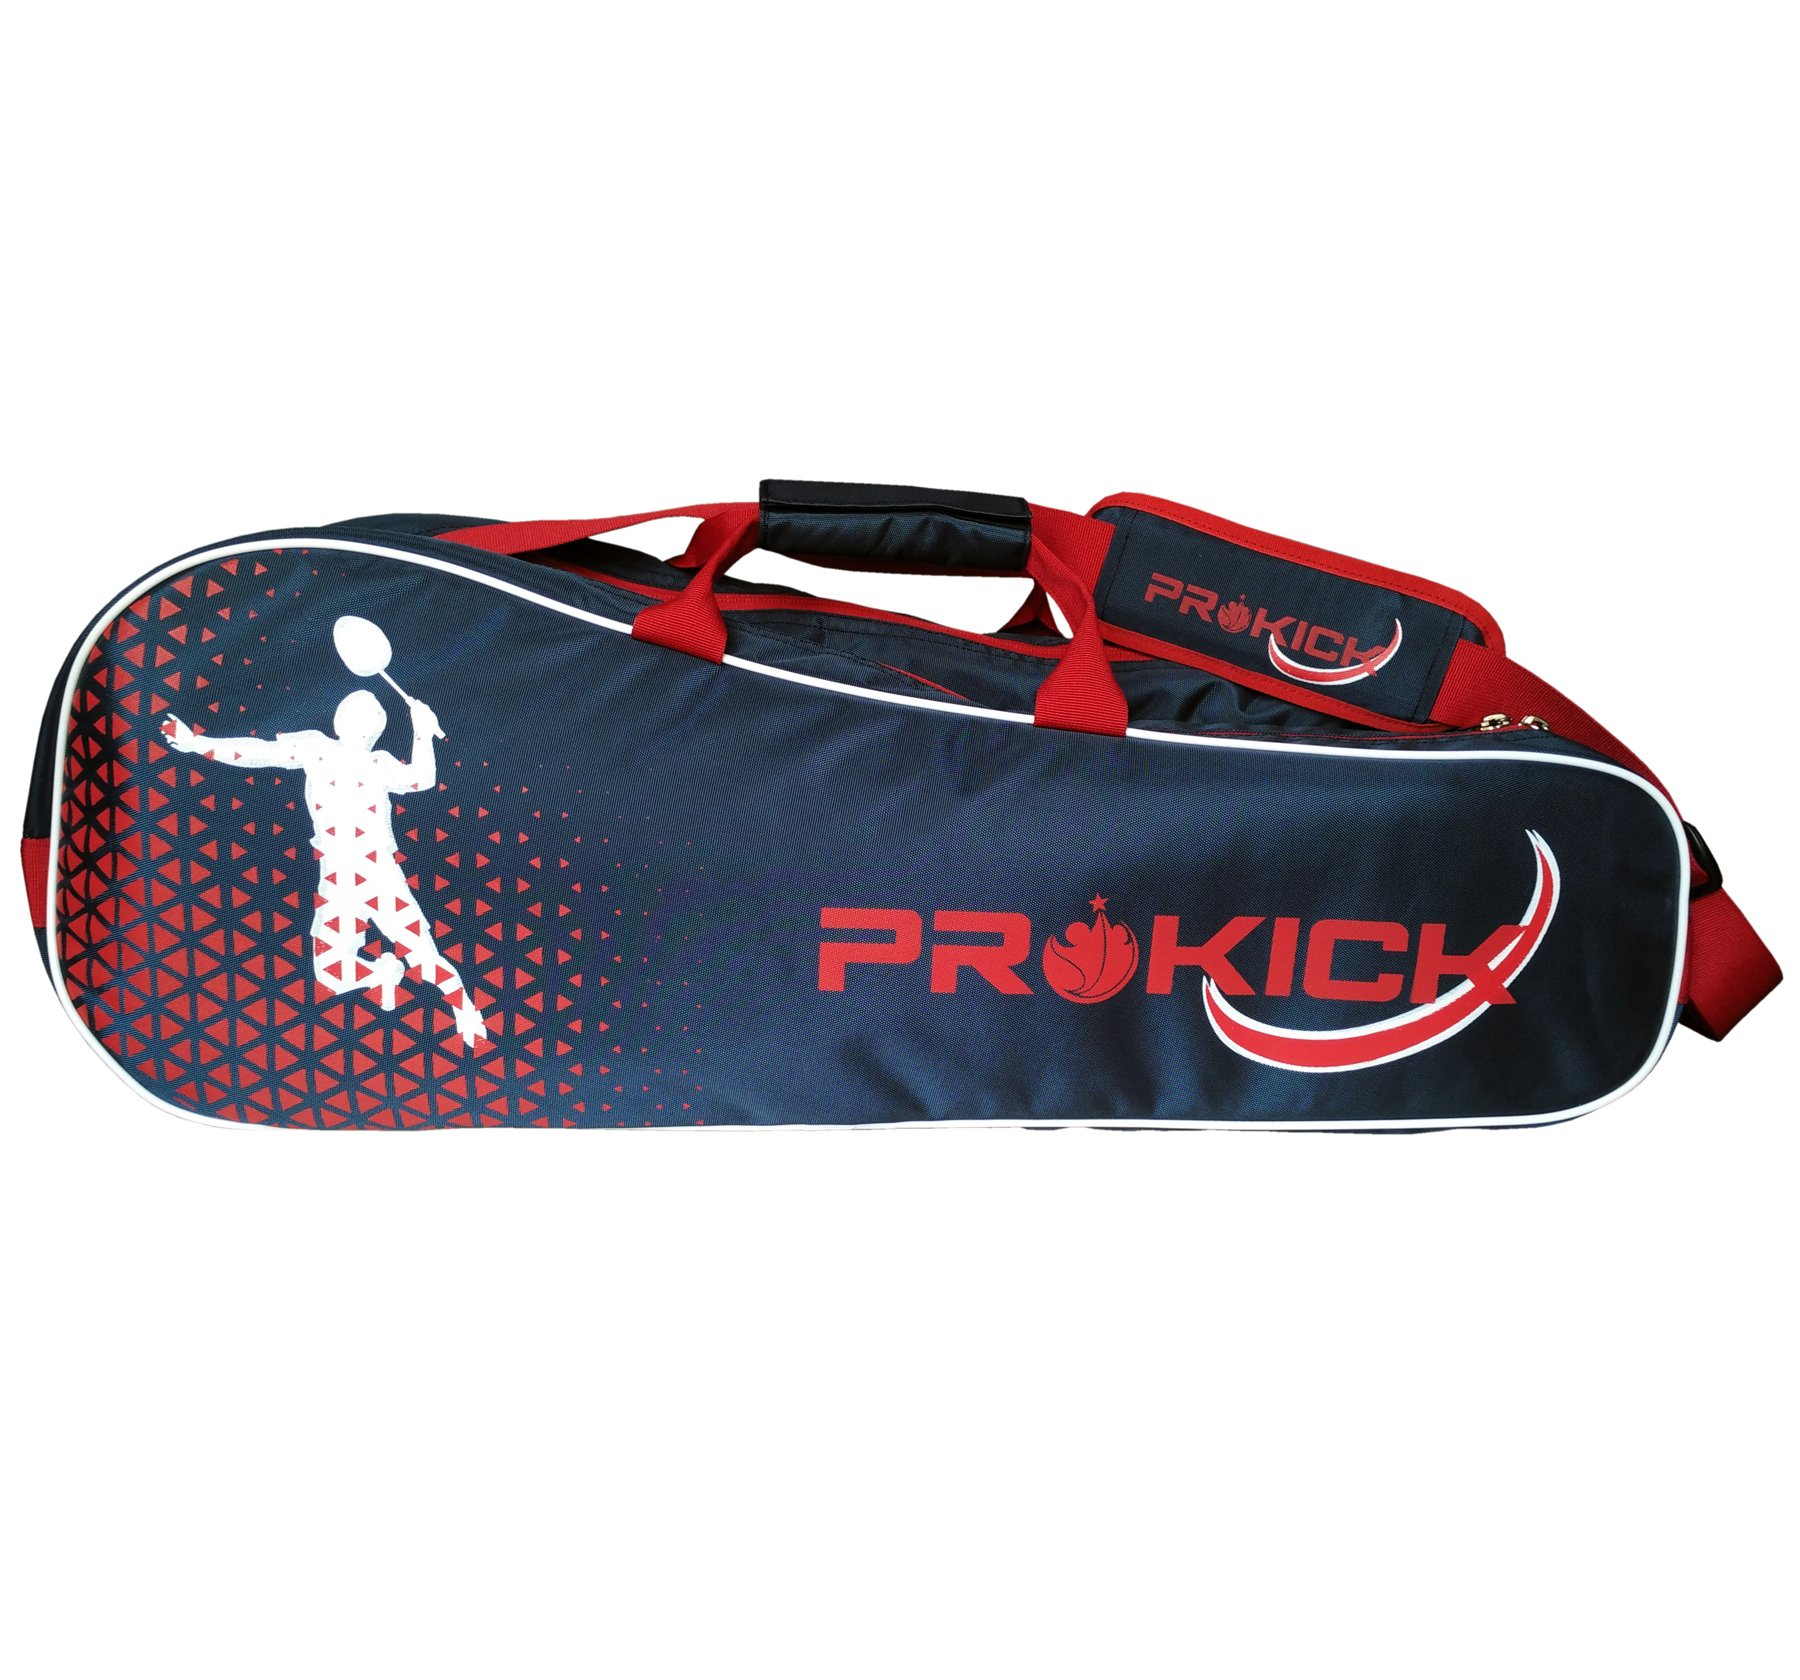 Prokick Badminton Kitbag with Double Zipper Compartments product image